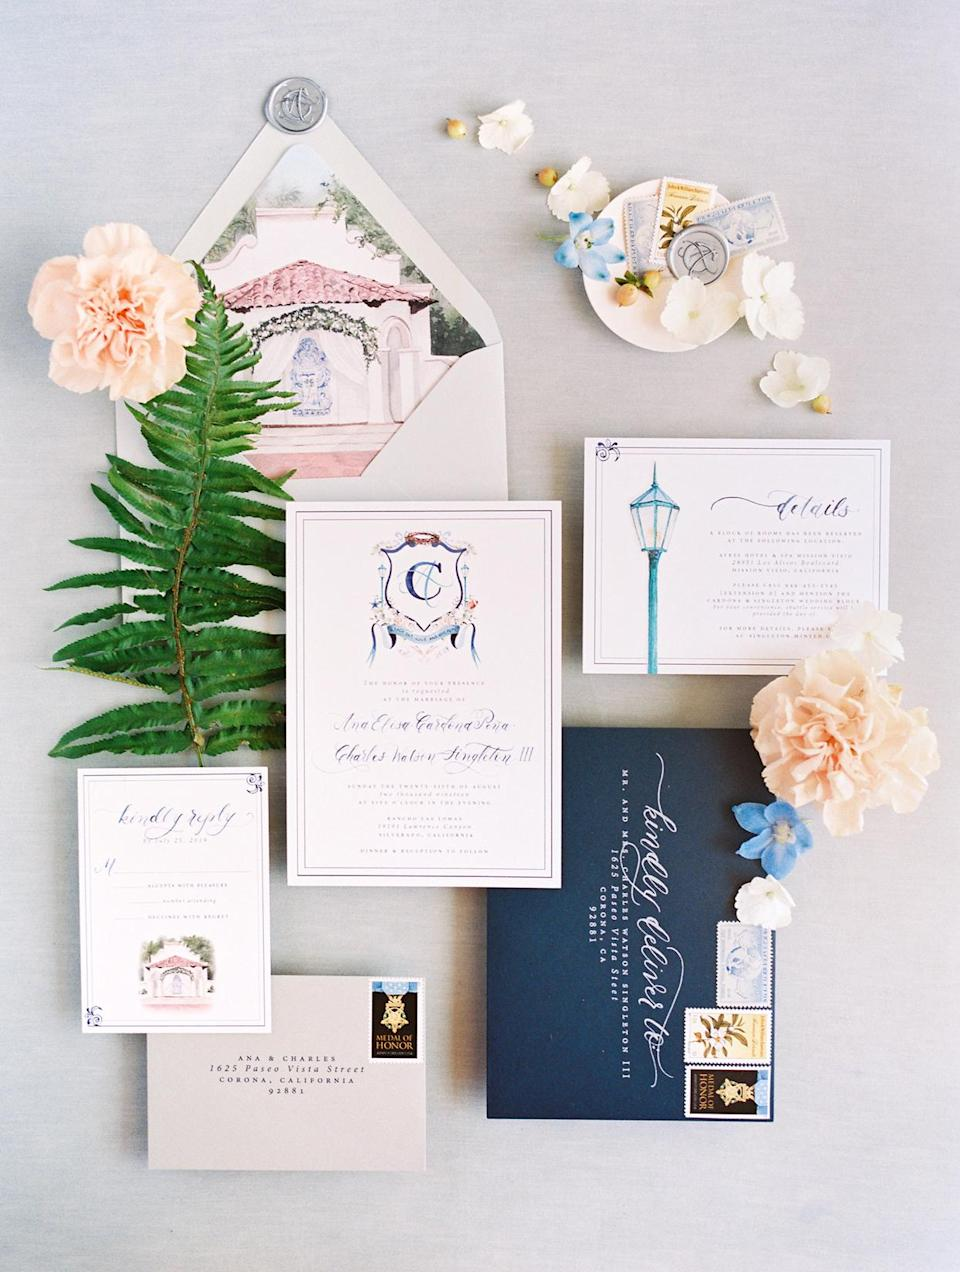 """<p>The couple's invitation suite, created by watercolor artist and calligrapher <a href=""""https://camimonet.com/"""" rel=""""nofollow noopener"""" target=""""_blank"""" data-ylk=""""slk:Cami Monet"""" class=""""link rapid-noclick-resp"""">Cami Monet</a>, featured an immediate nod to their venue, <a href=""""https://www.rancholaslomas.com/"""" rel=""""nofollow noopener"""" target=""""_blank"""" data-ylk=""""slk:Rancho Las Lomas"""" class=""""link rapid-noclick-resp"""">Rancho Las Lomas</a>—an illustration depicting the arch, under which Ana and Charles would eventually exchange vows, was splashed across the envelope liner. Another personal touch? The custom monogram that Cami designed specifically for the couple. """"She created and painted our family crest based on our love story,"""" says Ana. """"This became the creative center for the rest of the wedding details.""""</p>"""